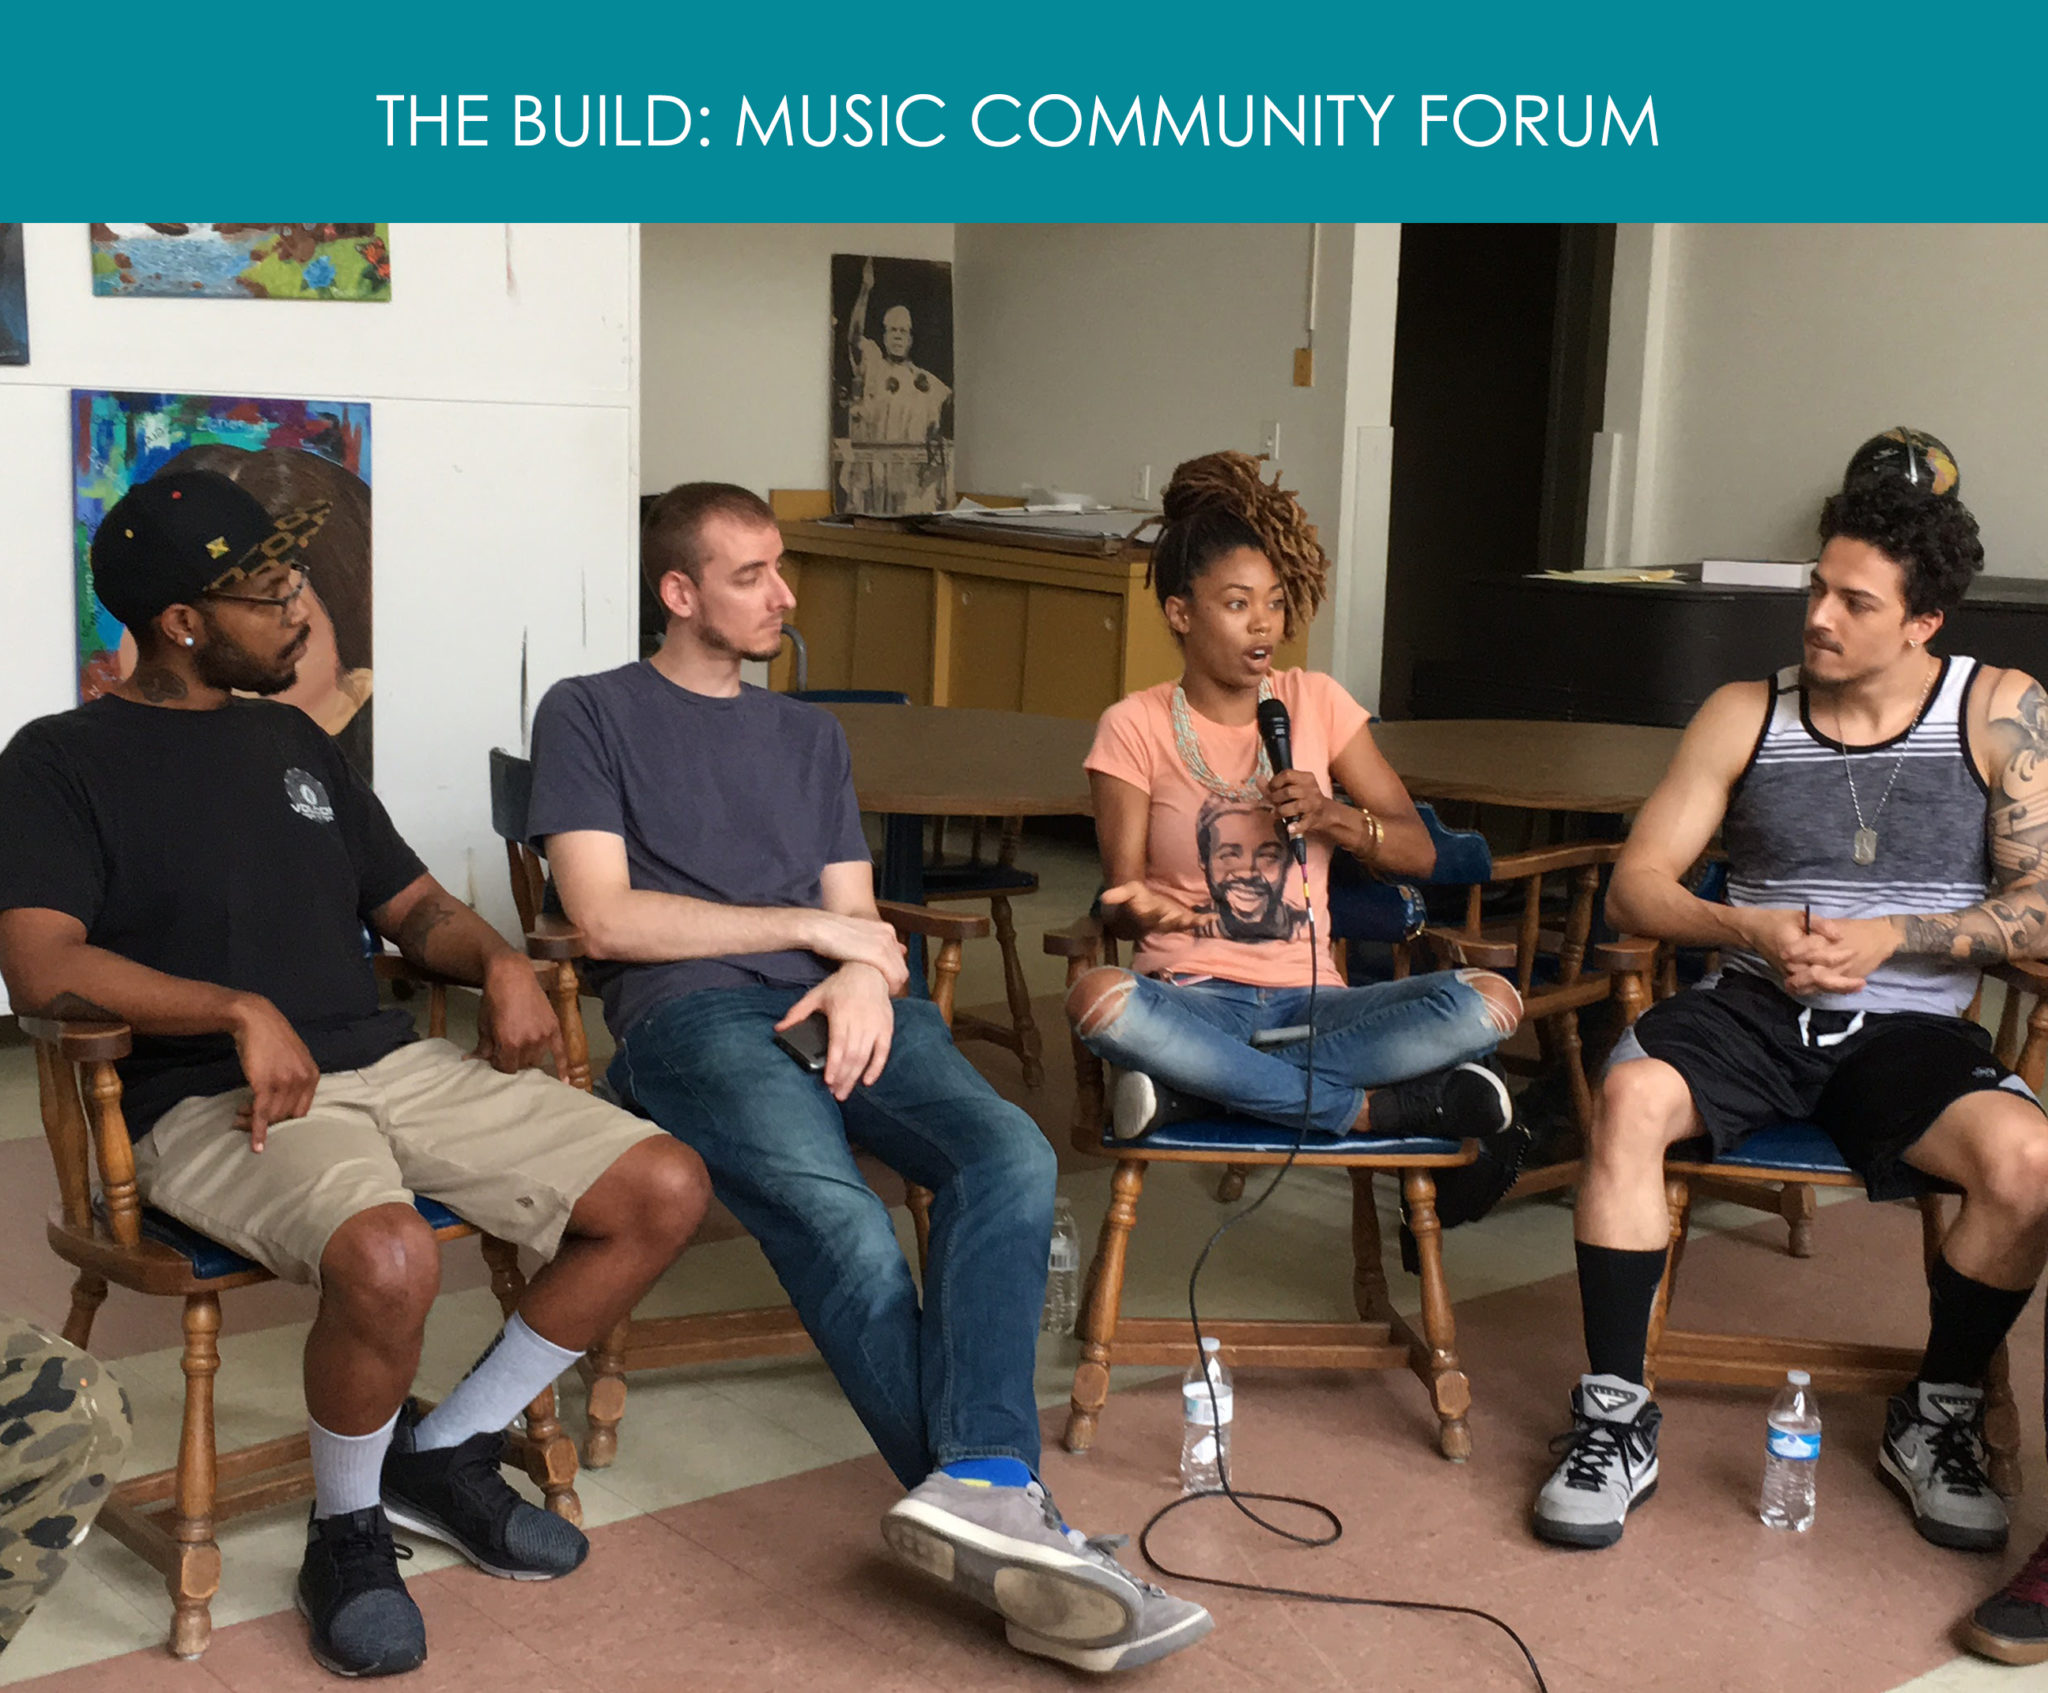 The Build: Music Community Forum